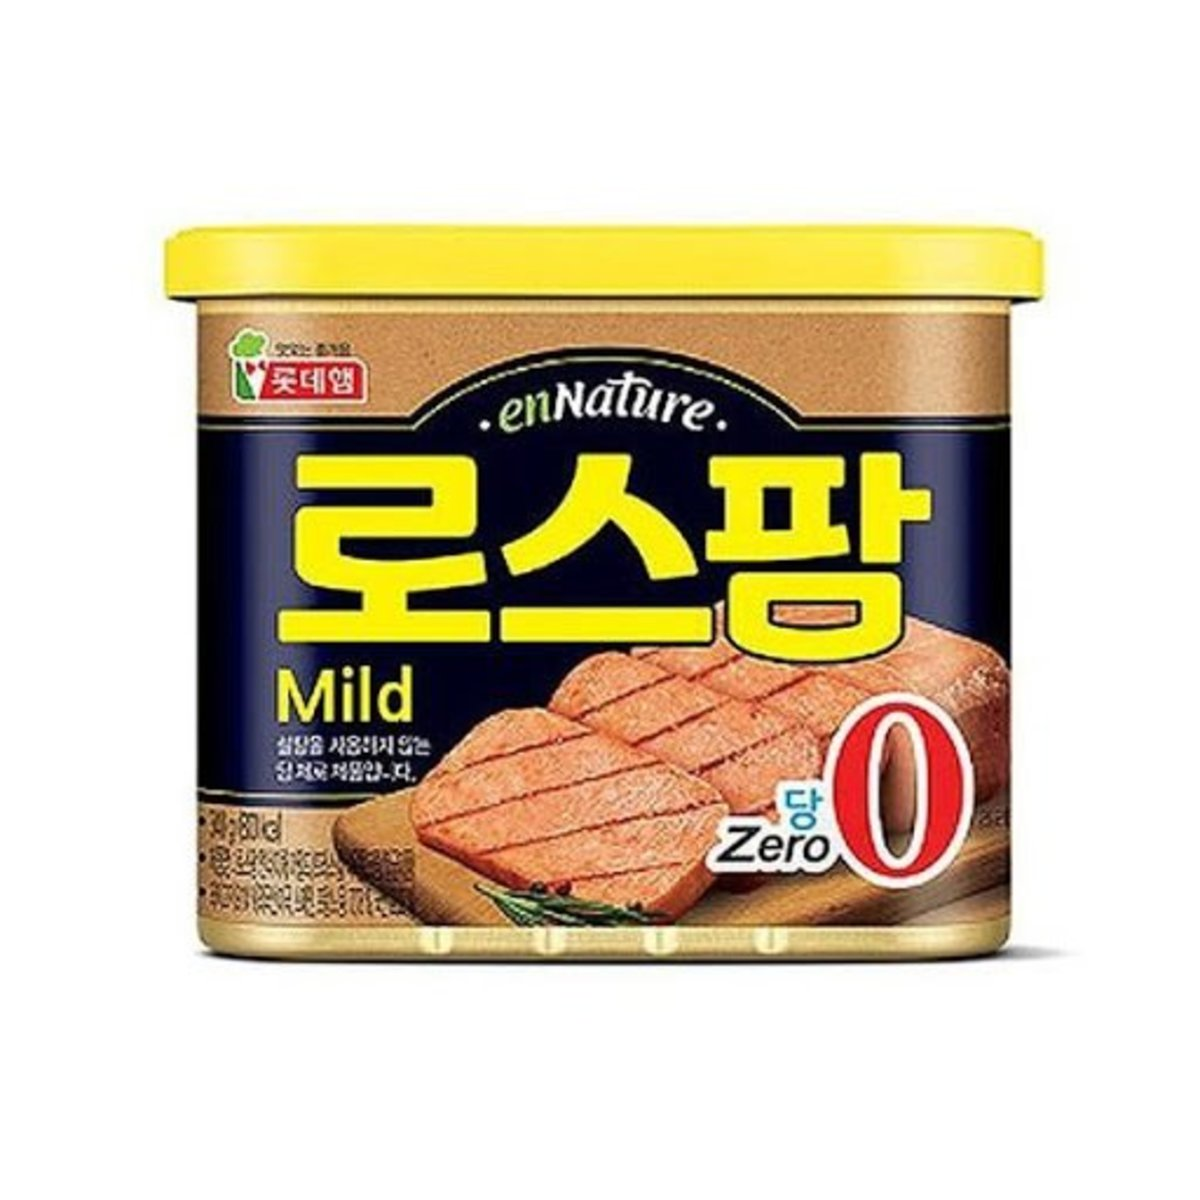 Lotte enNature Luncheon Meat 340g    [Parallel Import Product]